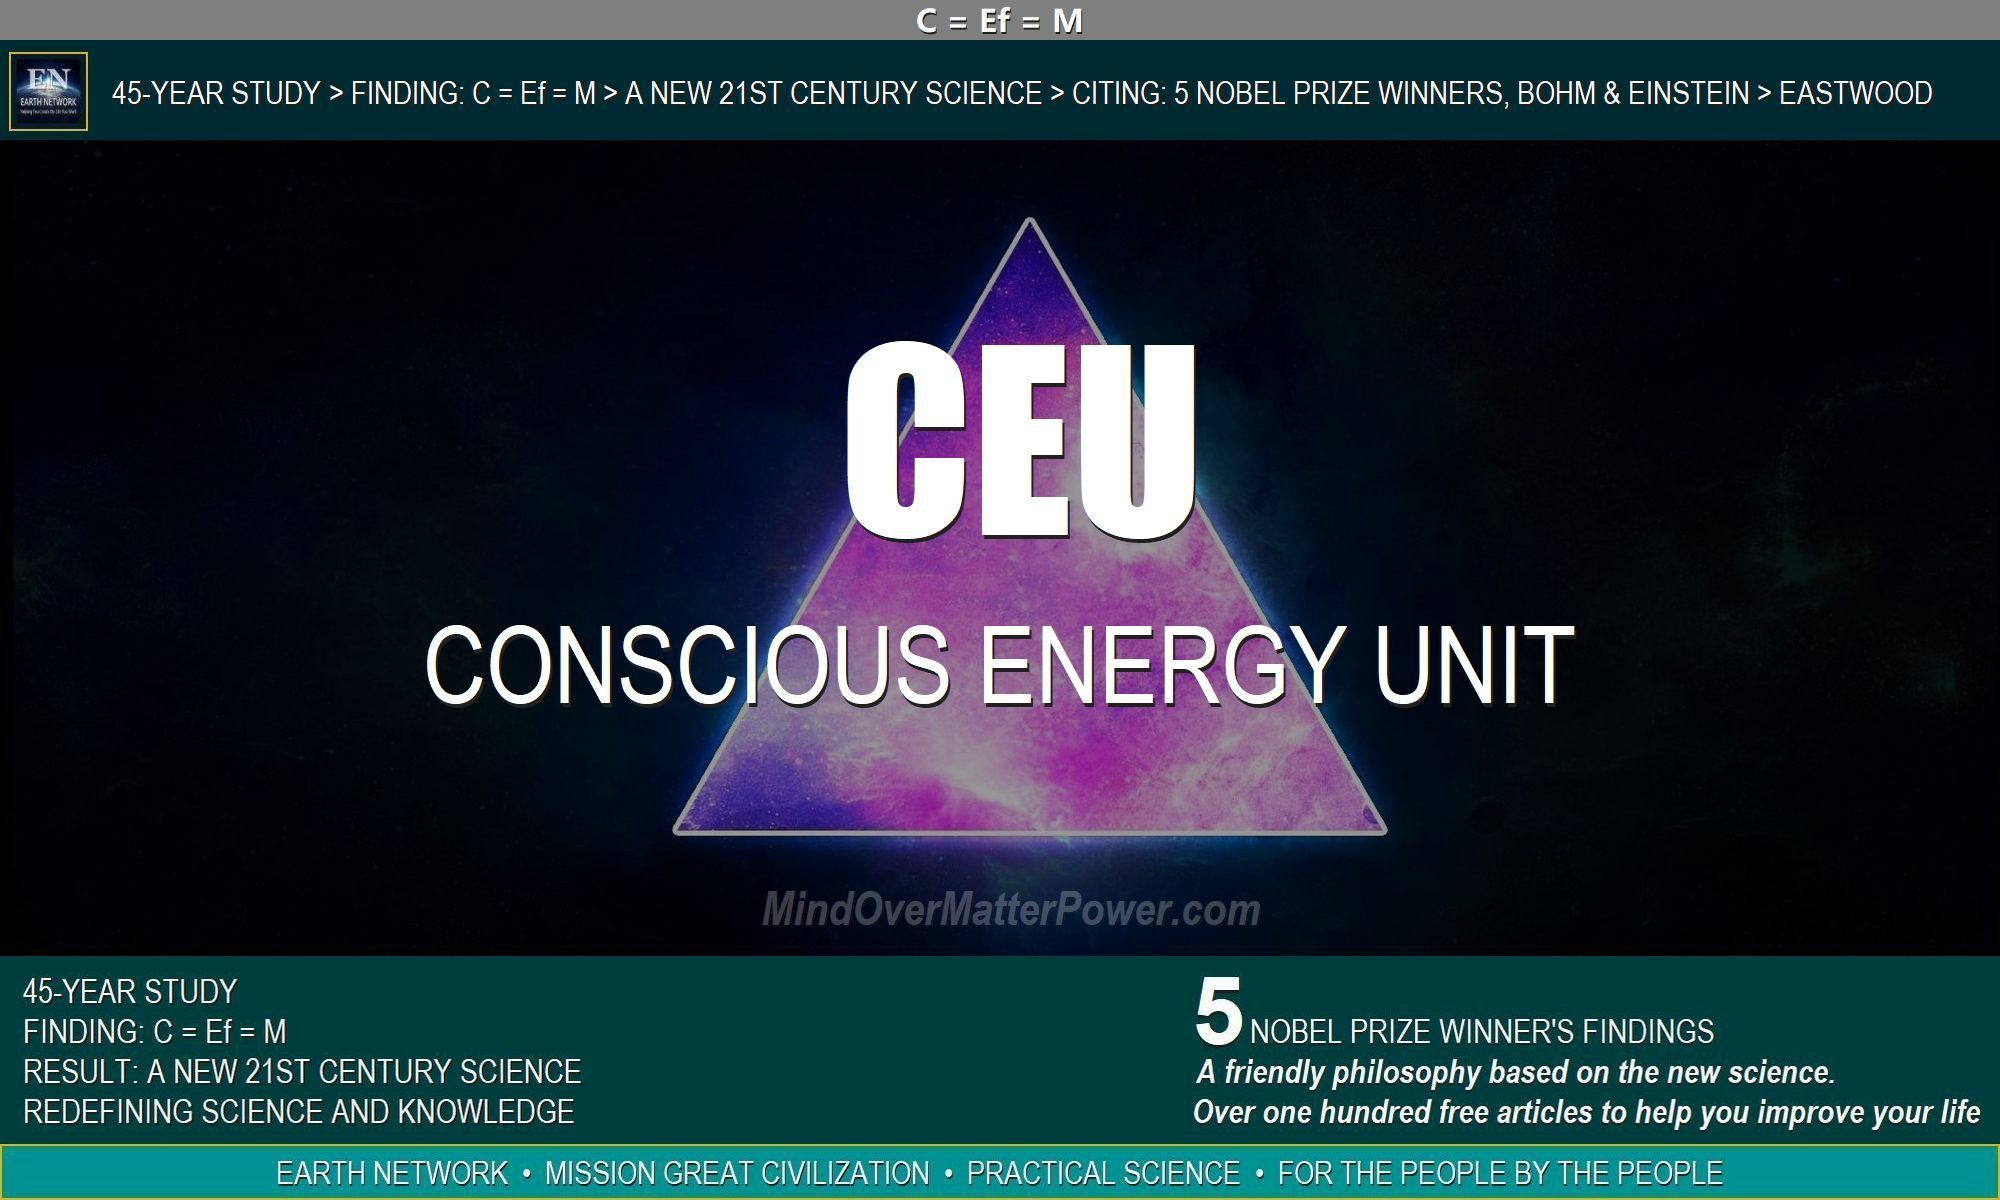 Triangle depicts basic conscious energy unit. Thoughts create reality by producing CEUs that form objects and events.